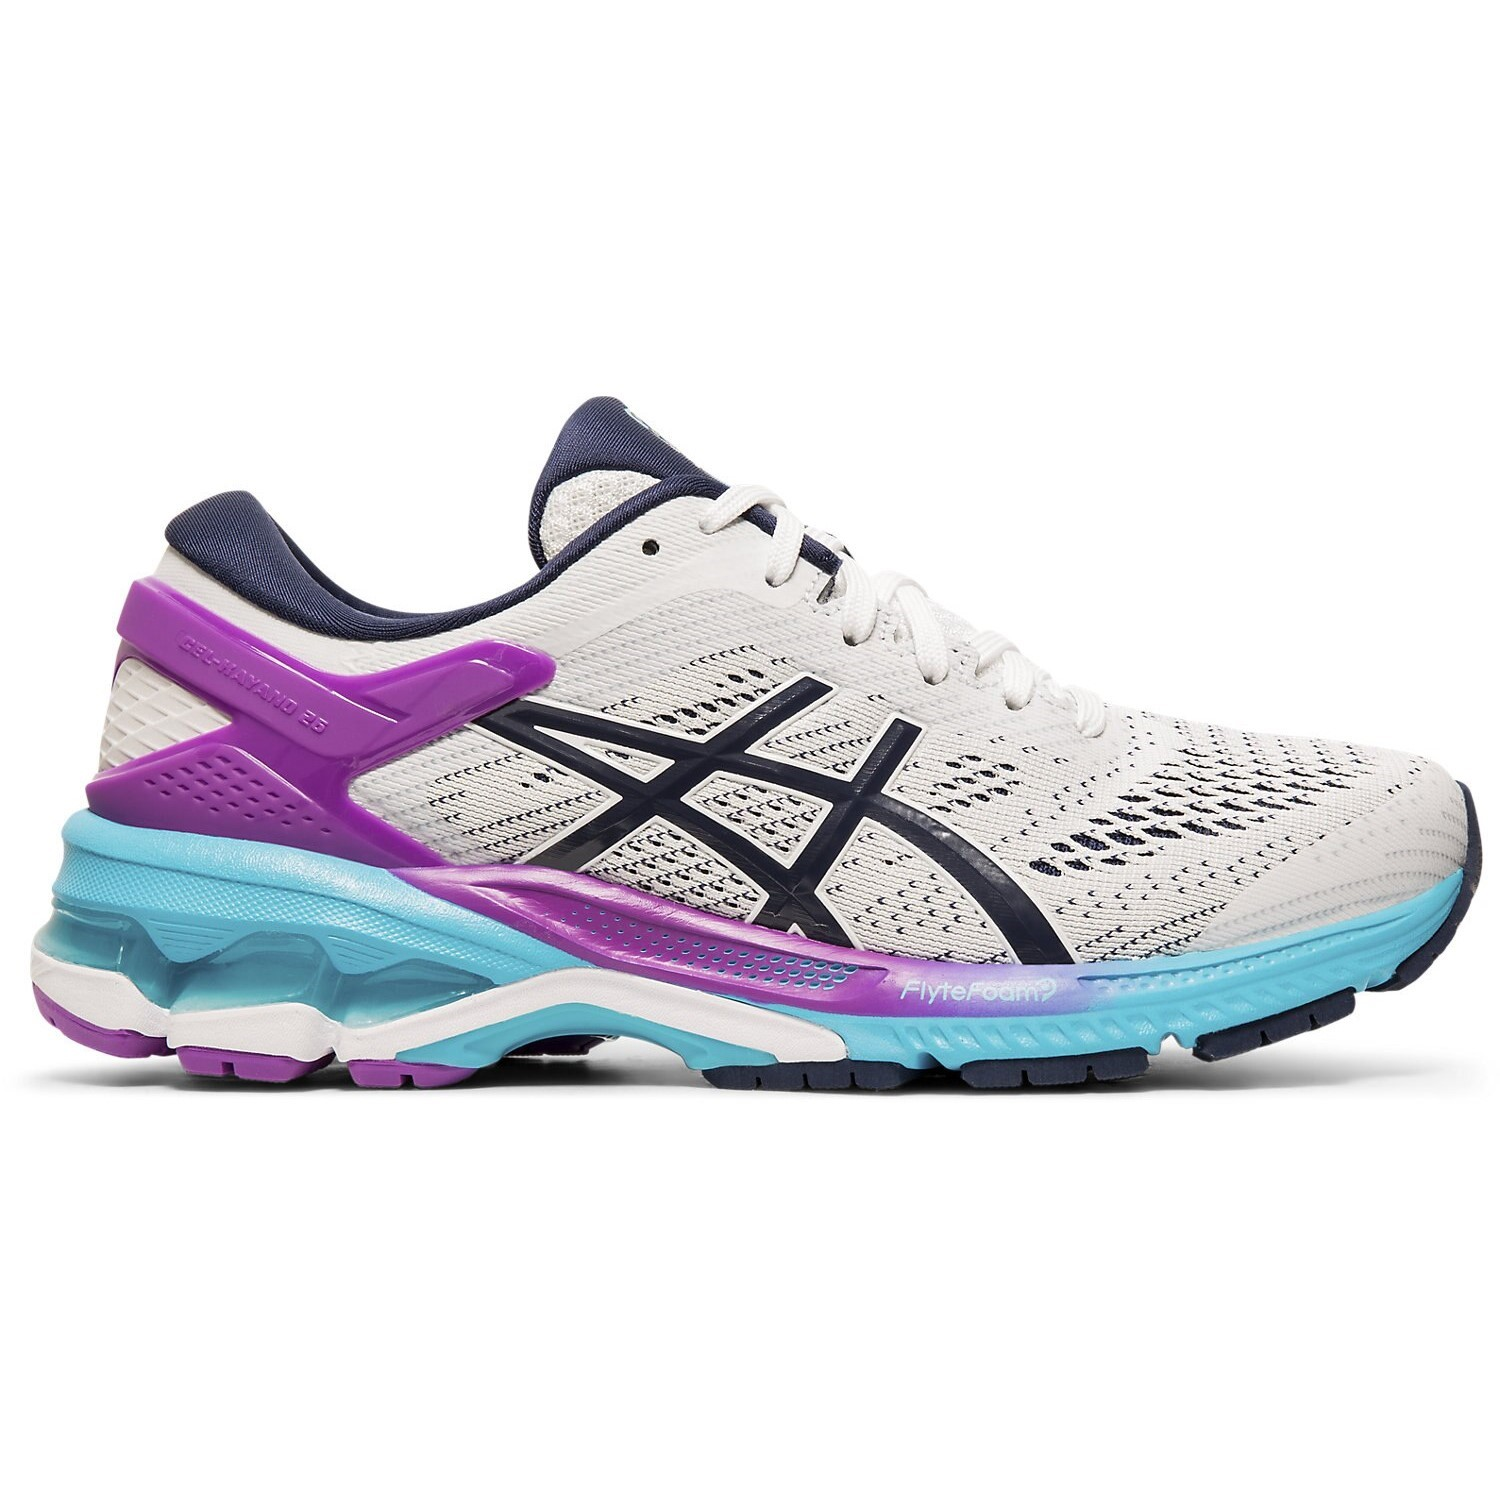 8aec3c45 Asics Gel Kayano 26 - Womens Running Shoes